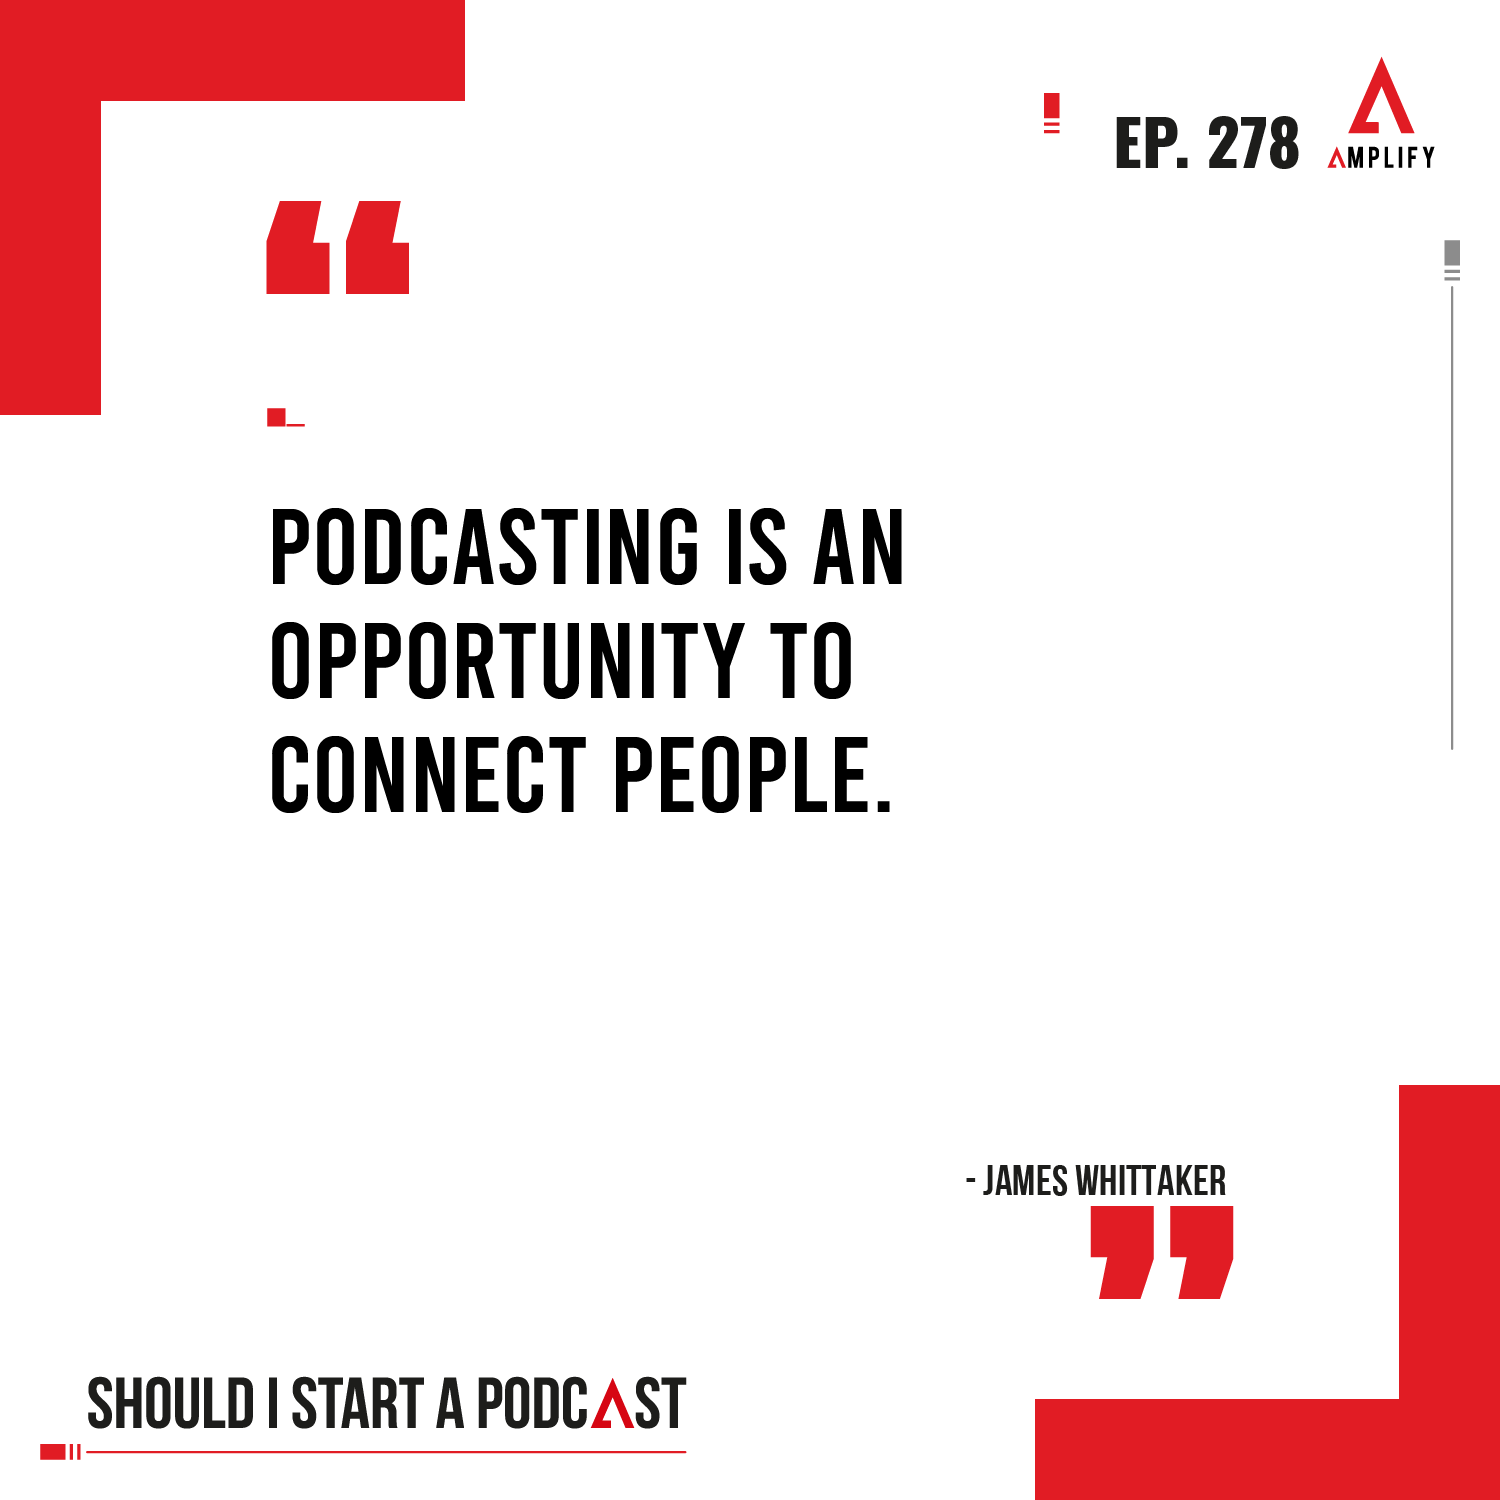 """decorative image with the quote """"Podcasting is an opportunity to connect people"""" by James Whittaker"""